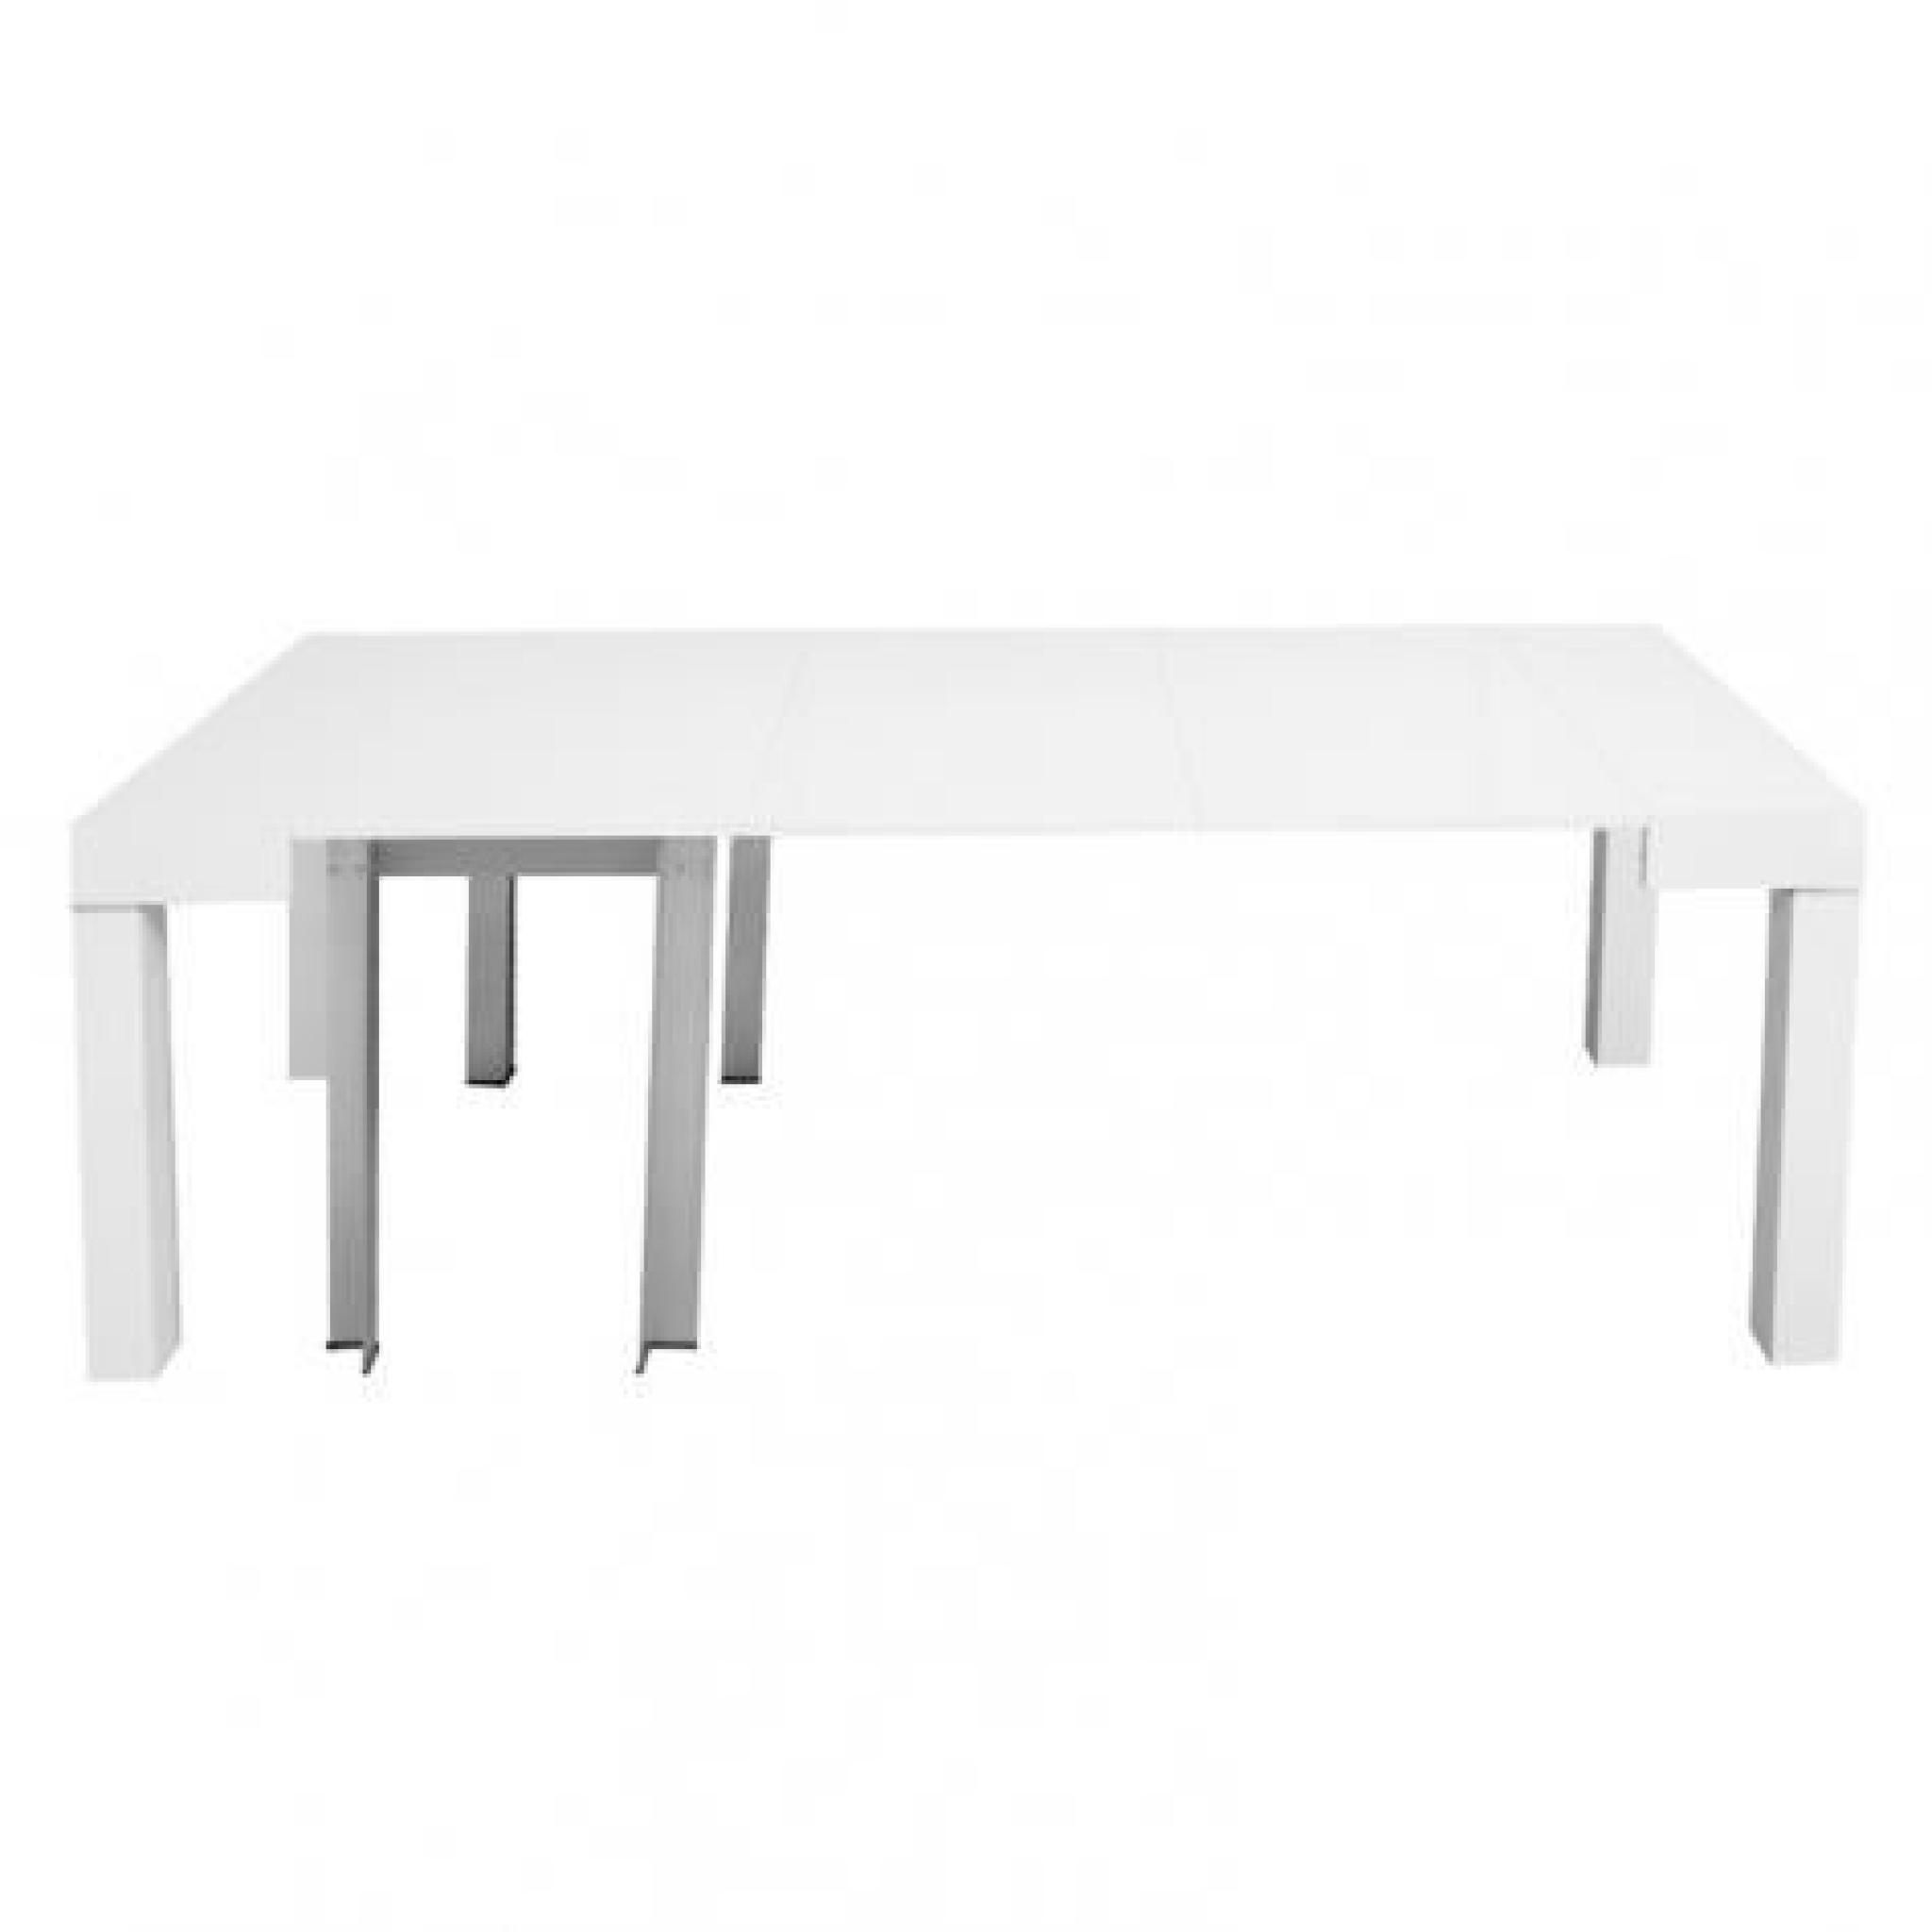 Table console extensible blanche laqu e 4 rallonges alesia for Table a manger console extensible